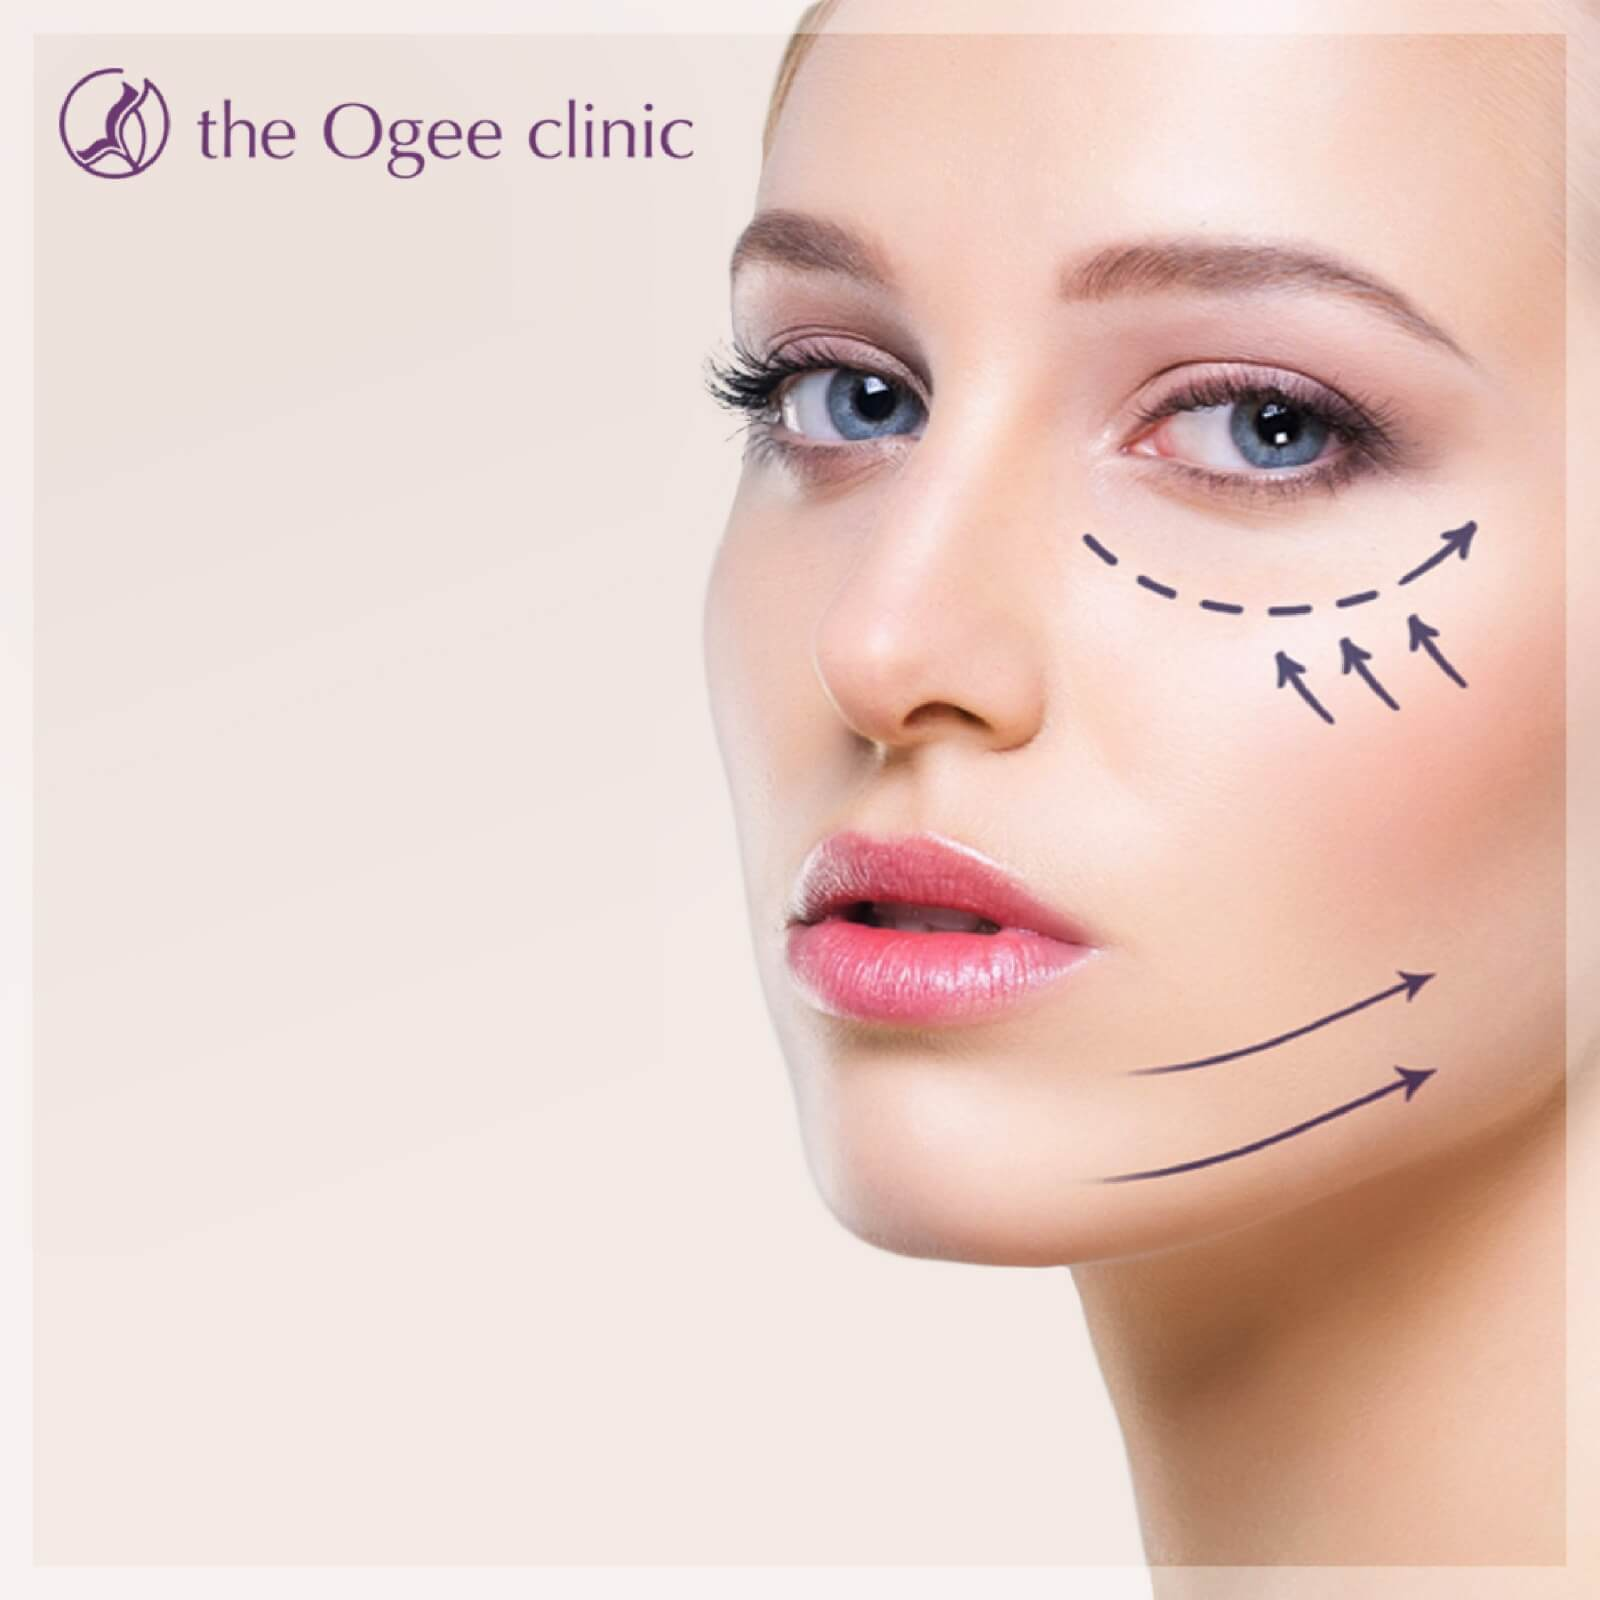 TheOgeeClinic - Treatment Ultraskin HIFU